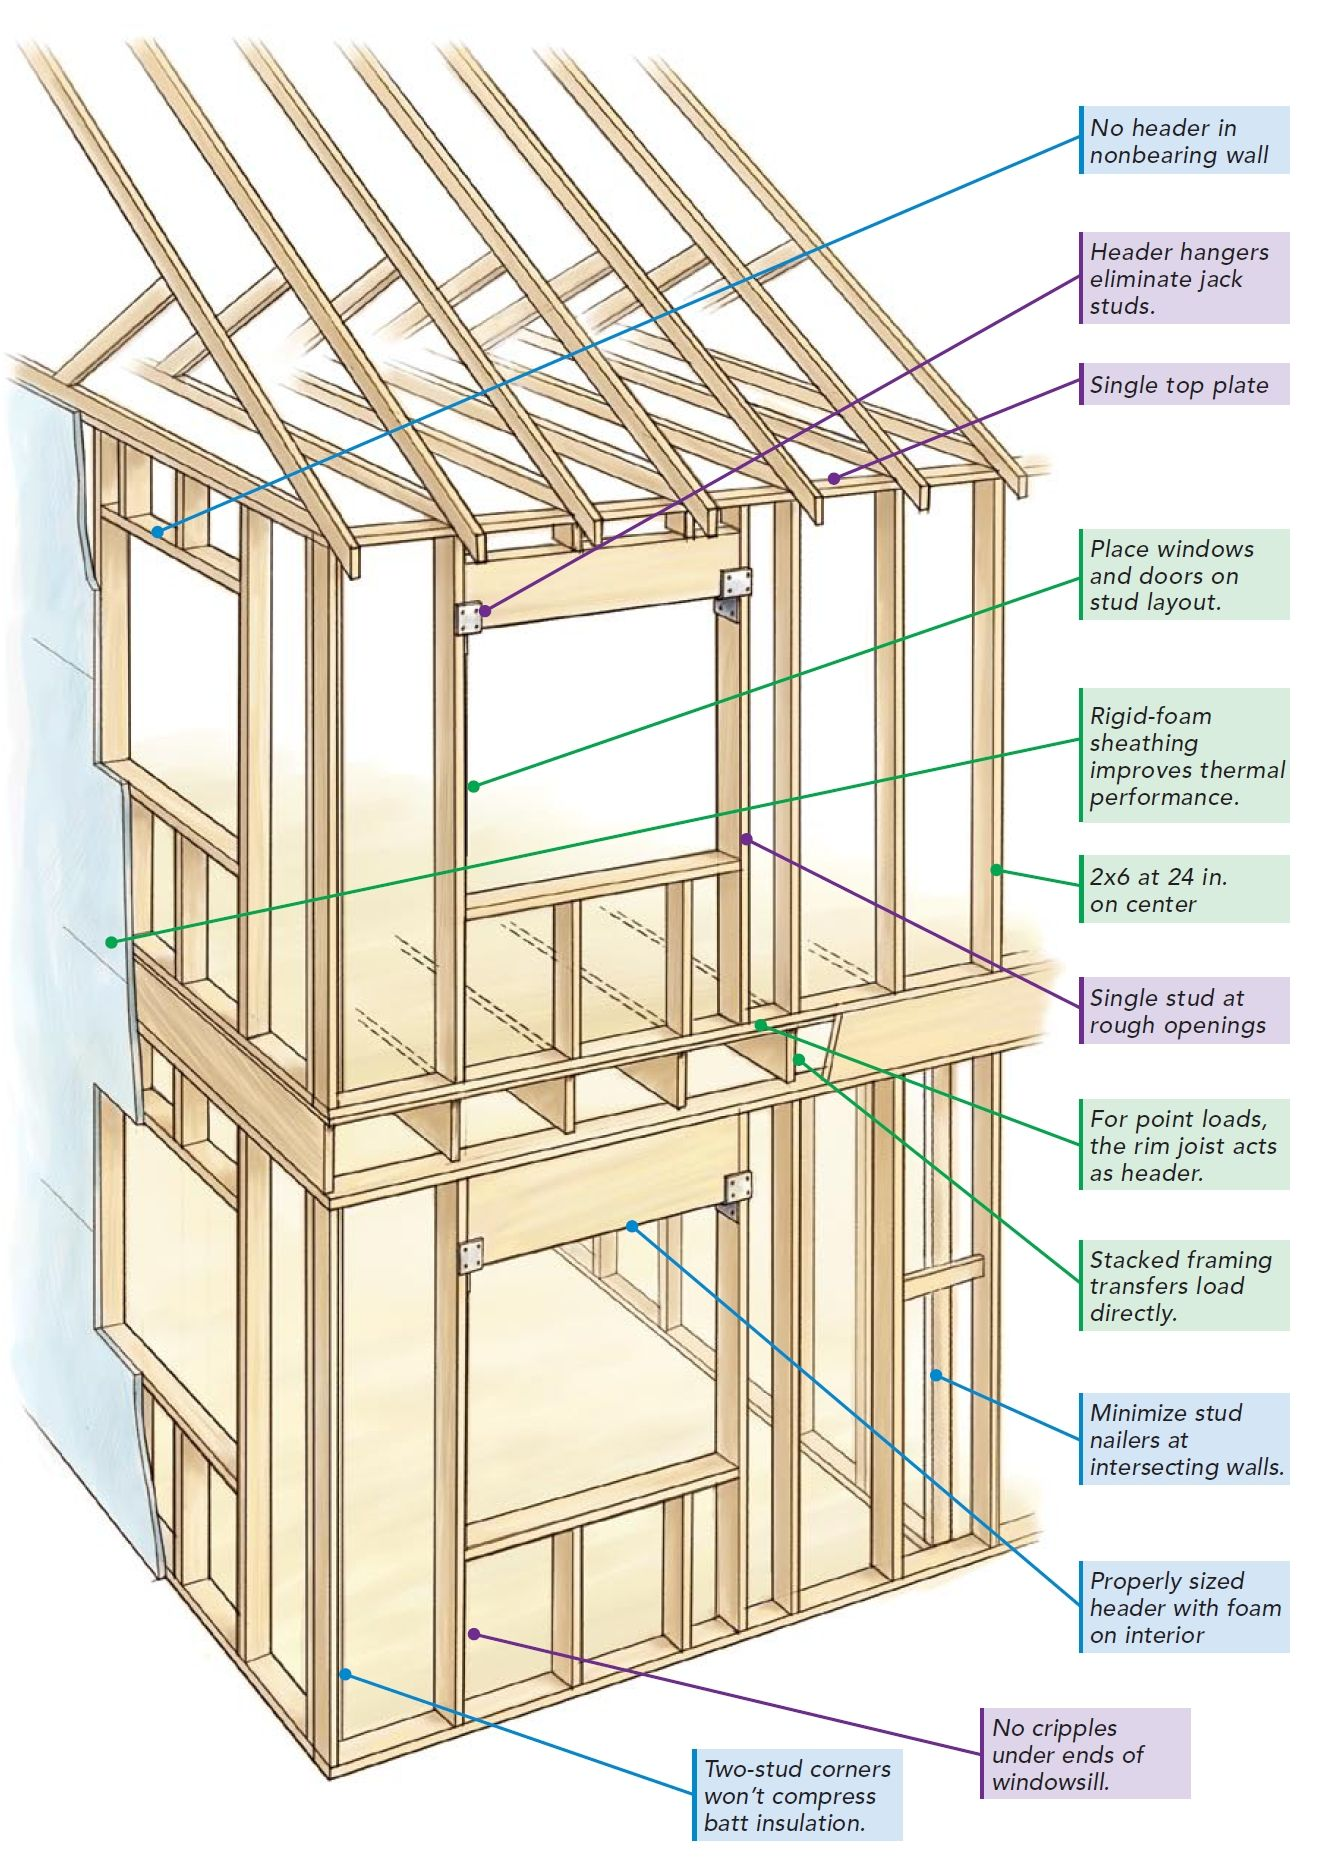 In Line Framing In A Home Framed According To Optimum